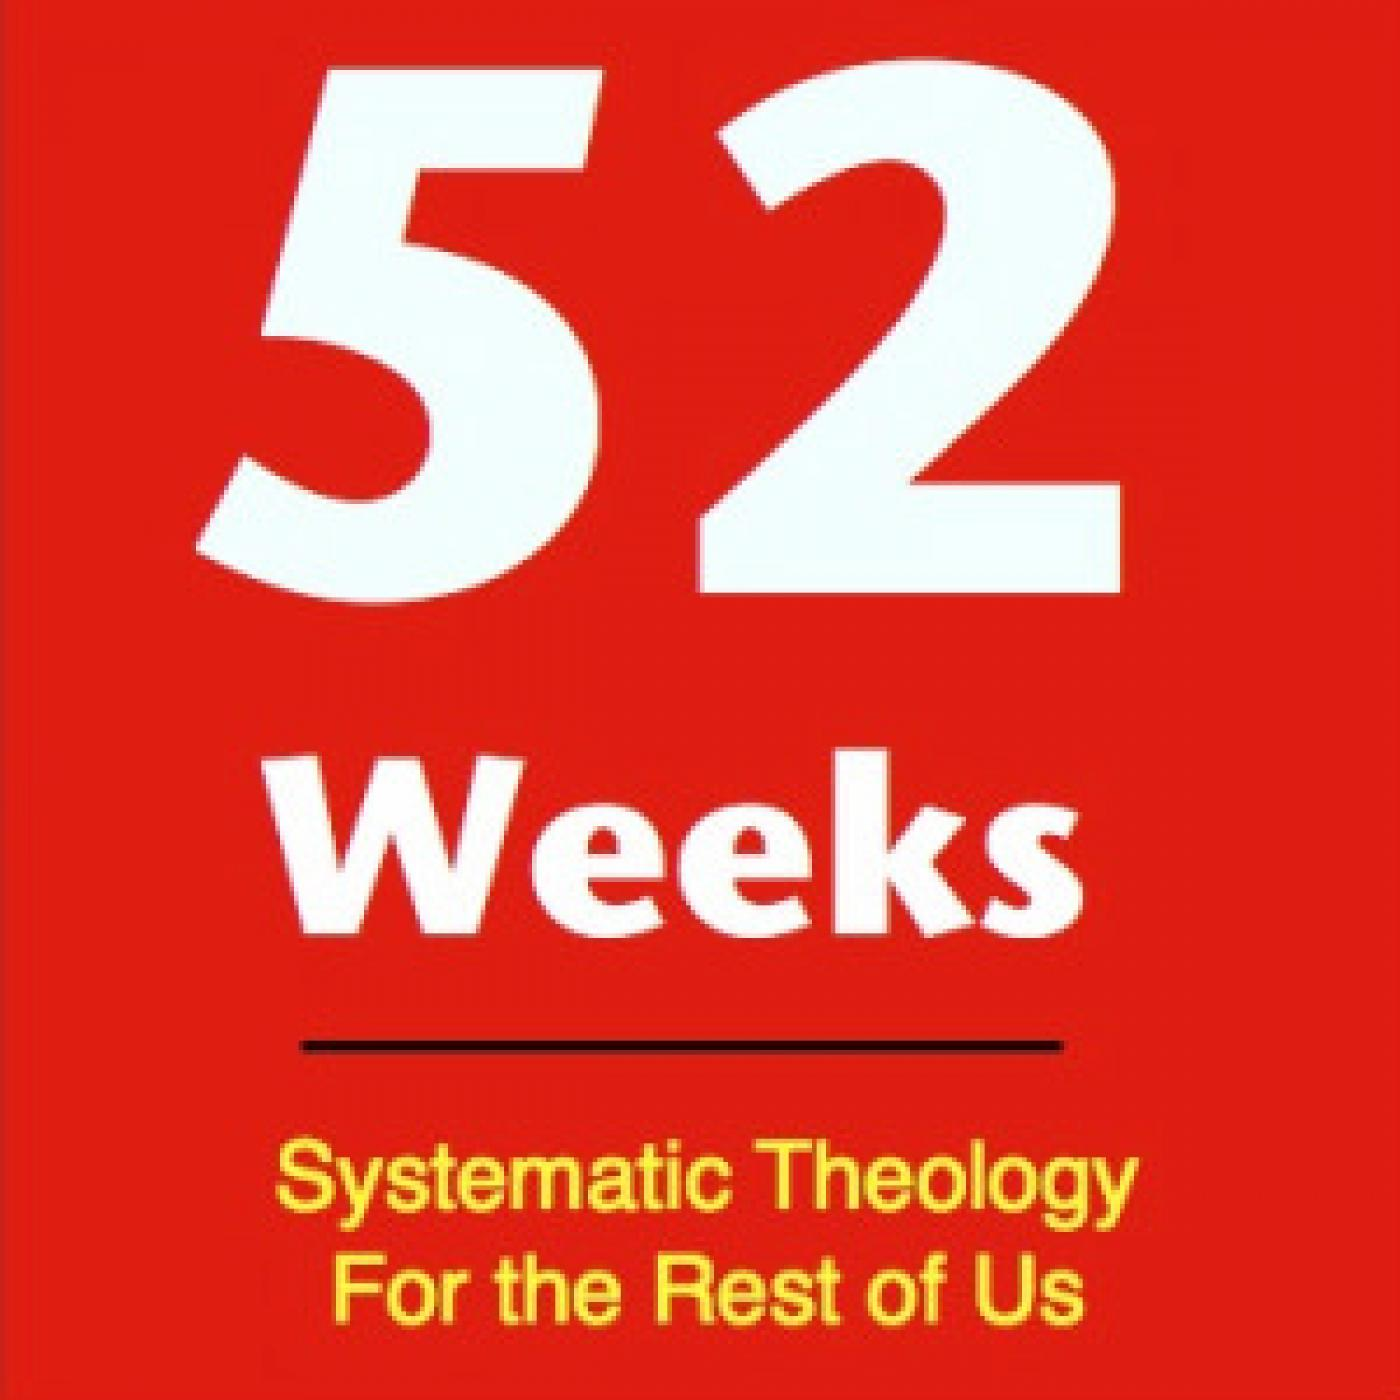 52 Weeks - Systematic Theology for the Rest of Us